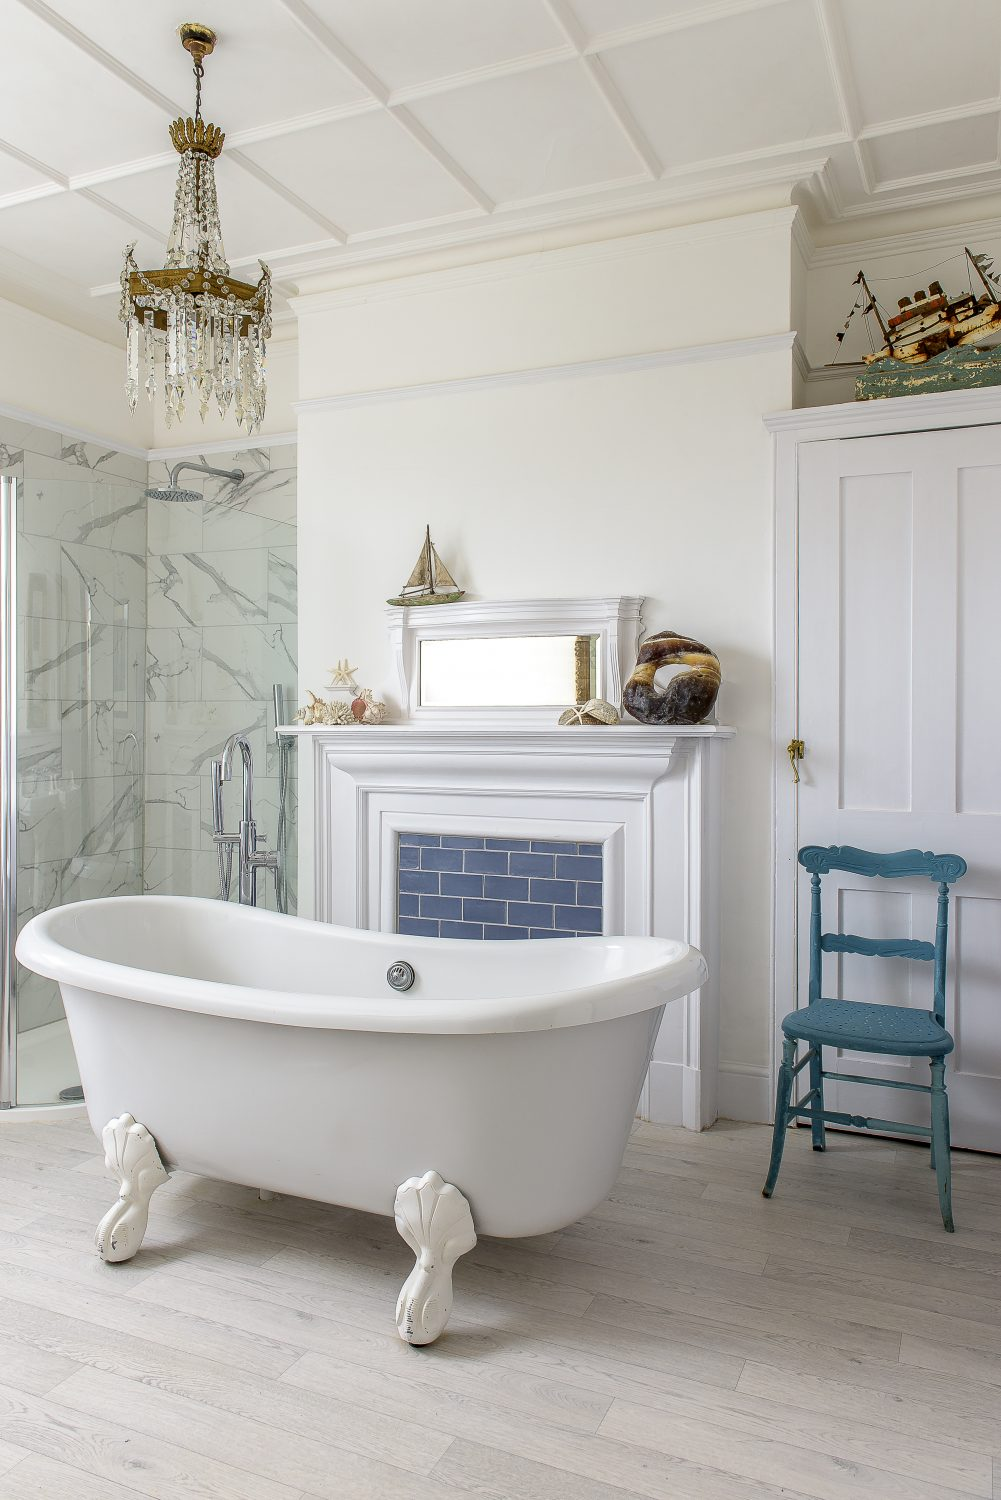 """Susan transformed one of the original bedrooms into a bathroom, retaining the fireplace. Fearing the weight implications of a stand-alone cast iron bath, she found this claw-foot version for £10 on eBay. """"It's resin. Cast iron would have gone through the floor."""""""